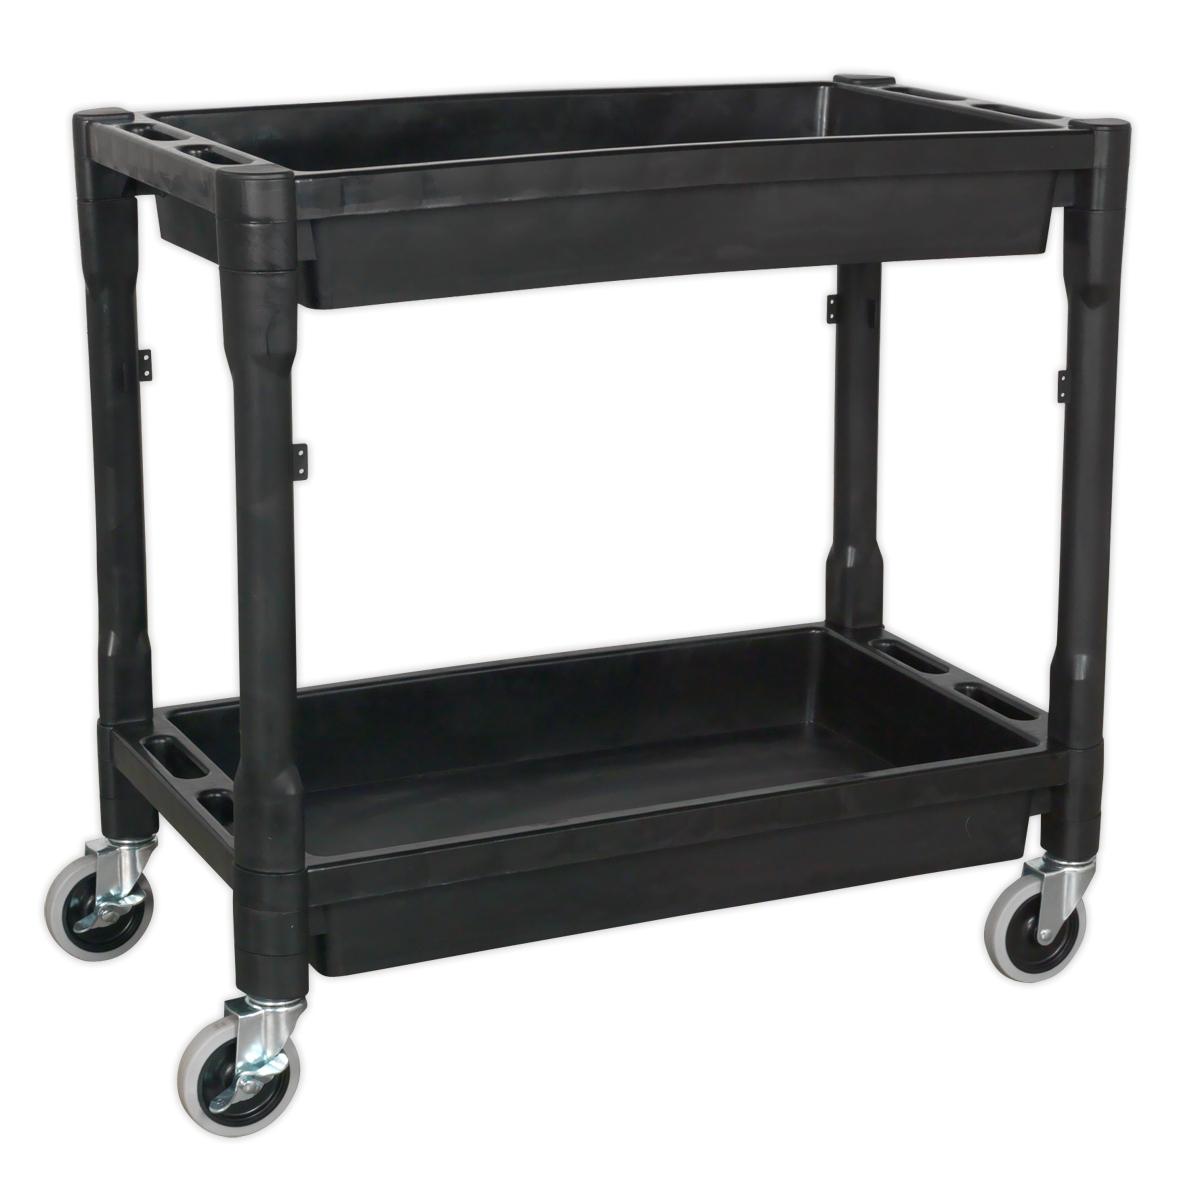 SEALEY  TROLLEY 2 LEVEL COMPOSITE HEAVY DUTY